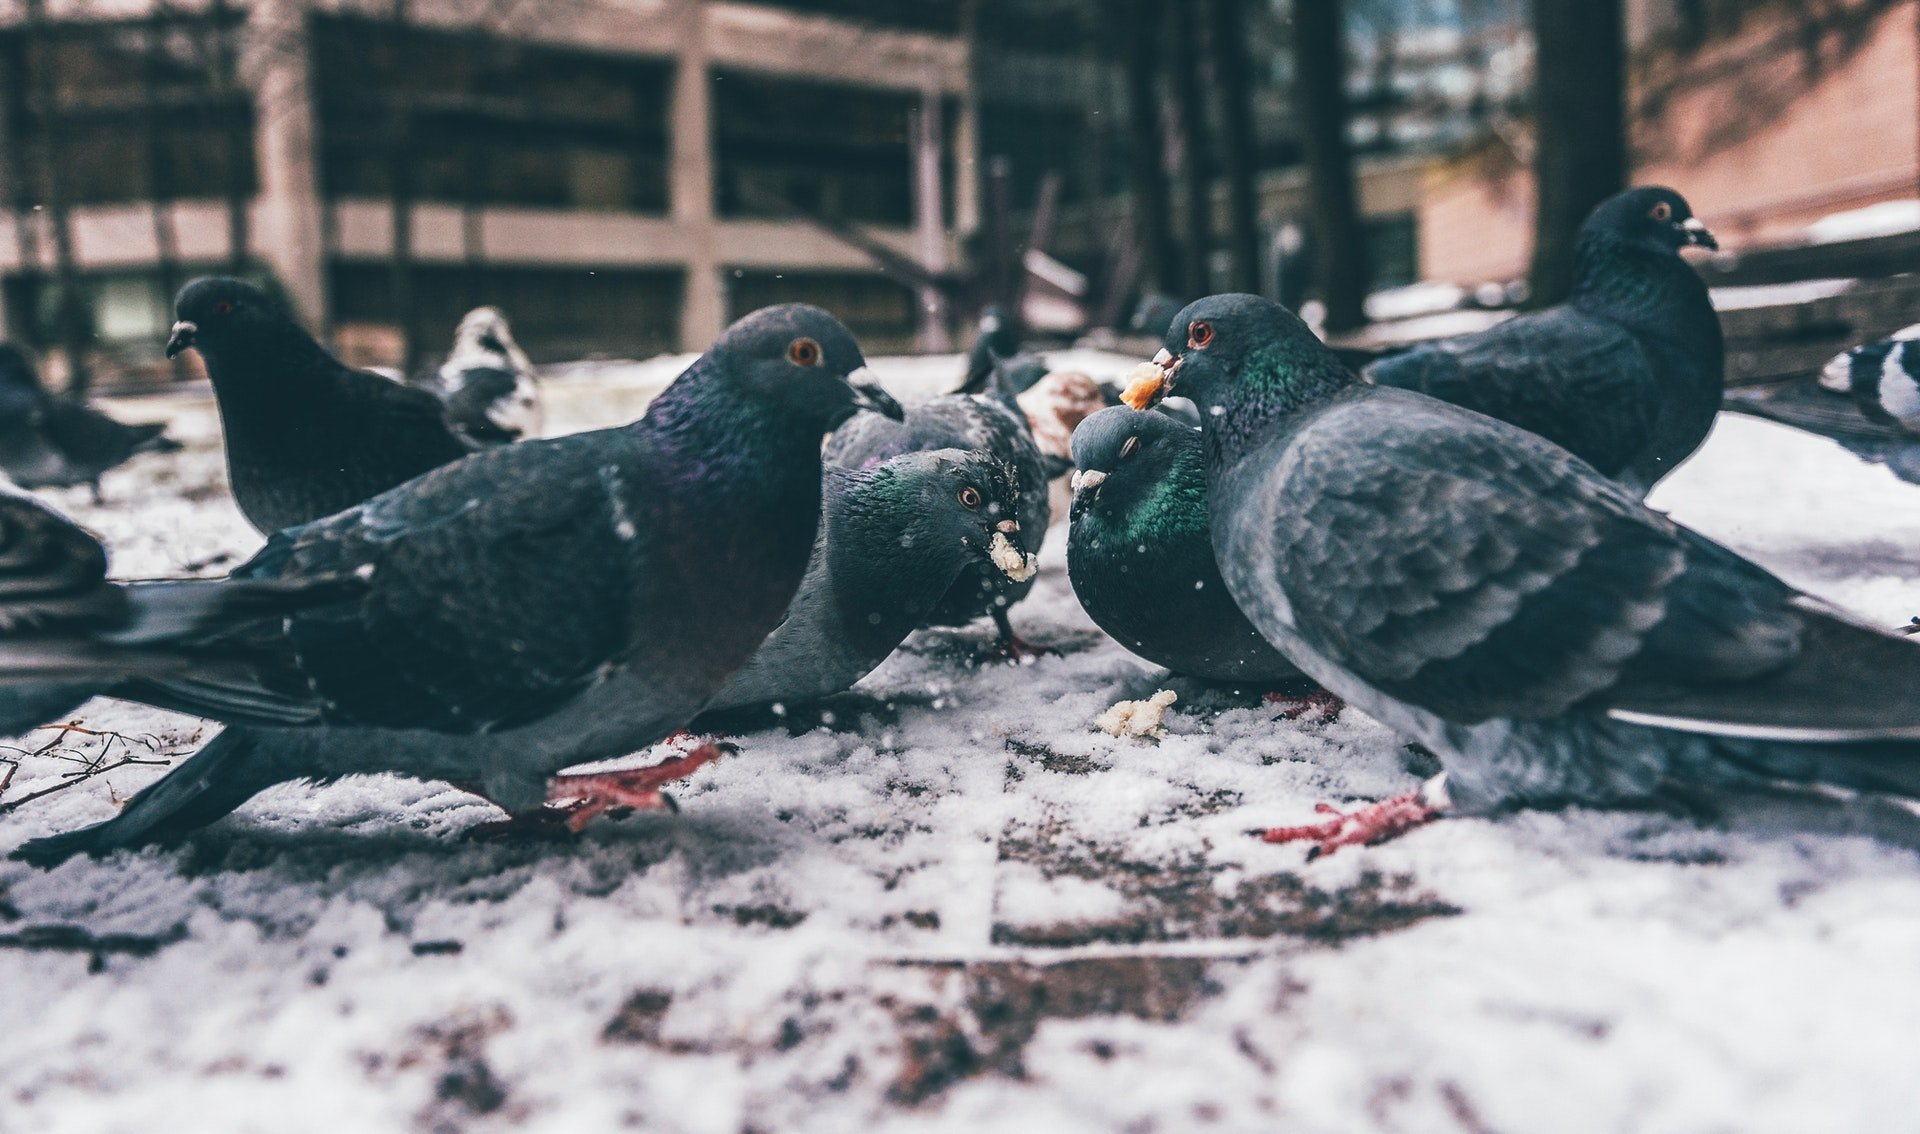 Significance of Pigeons Coming To Your House